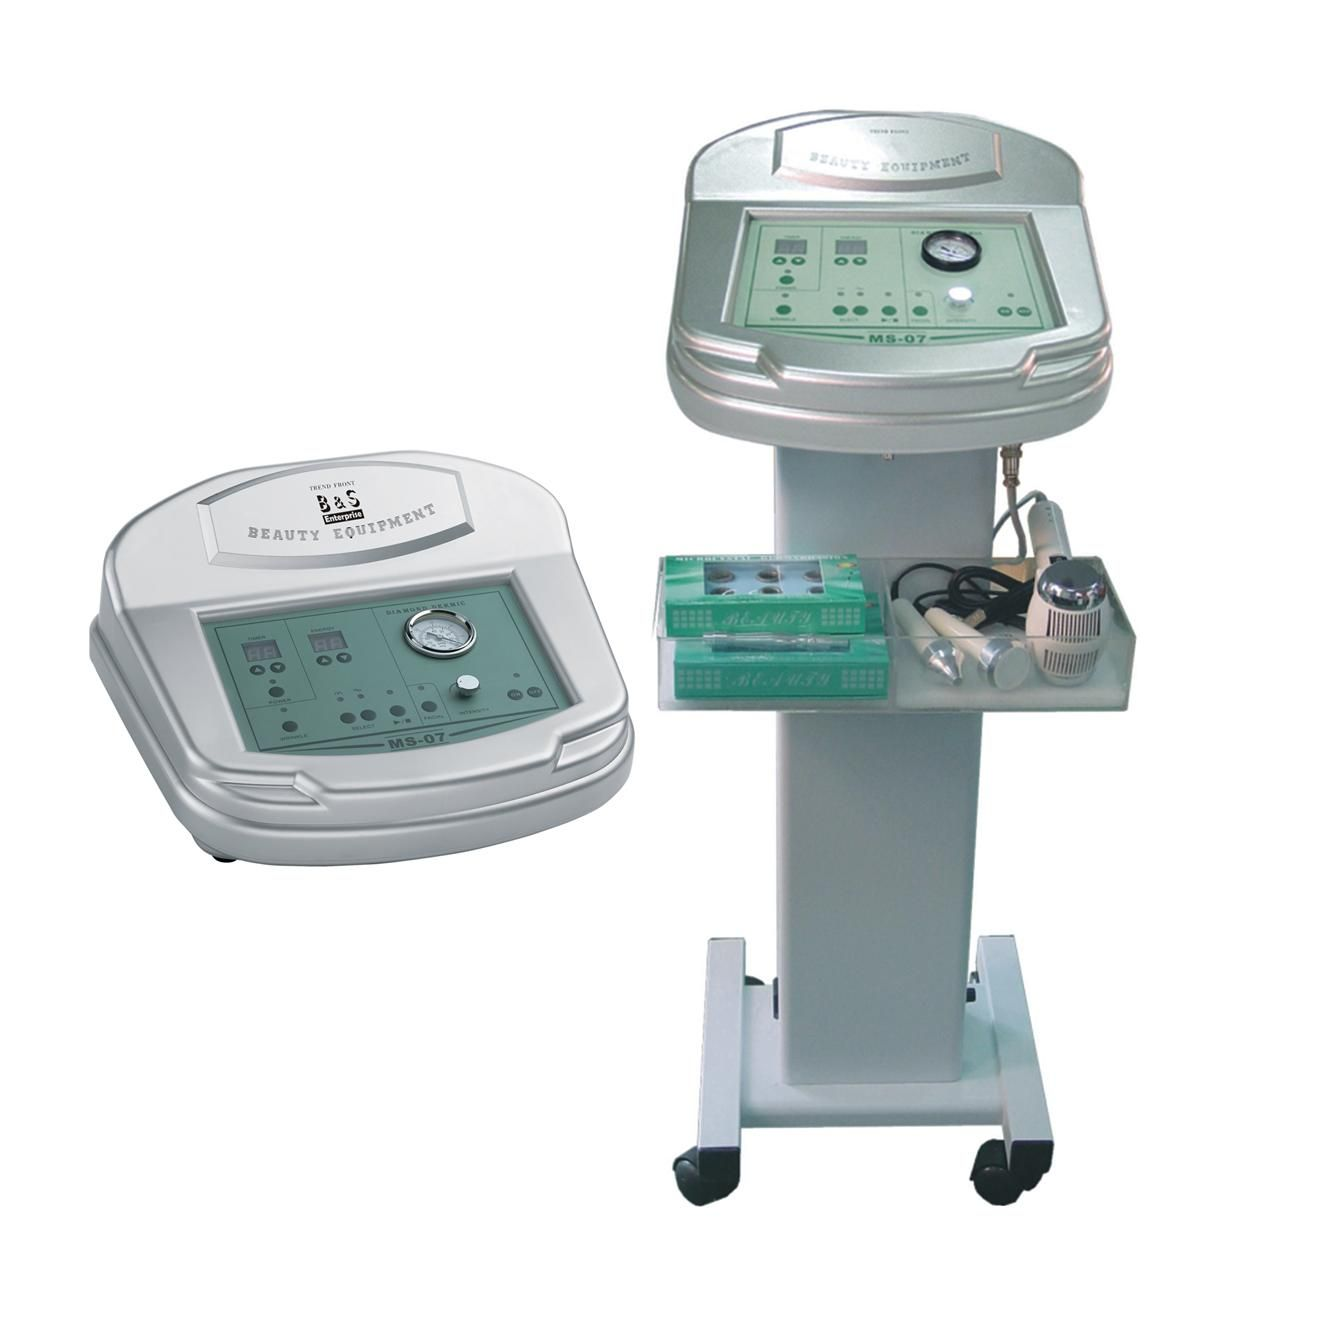 3 In 1 Diamond Microdermabrasion Microdermabrasion Skin Care Clinic Microdermabrasion Treatment